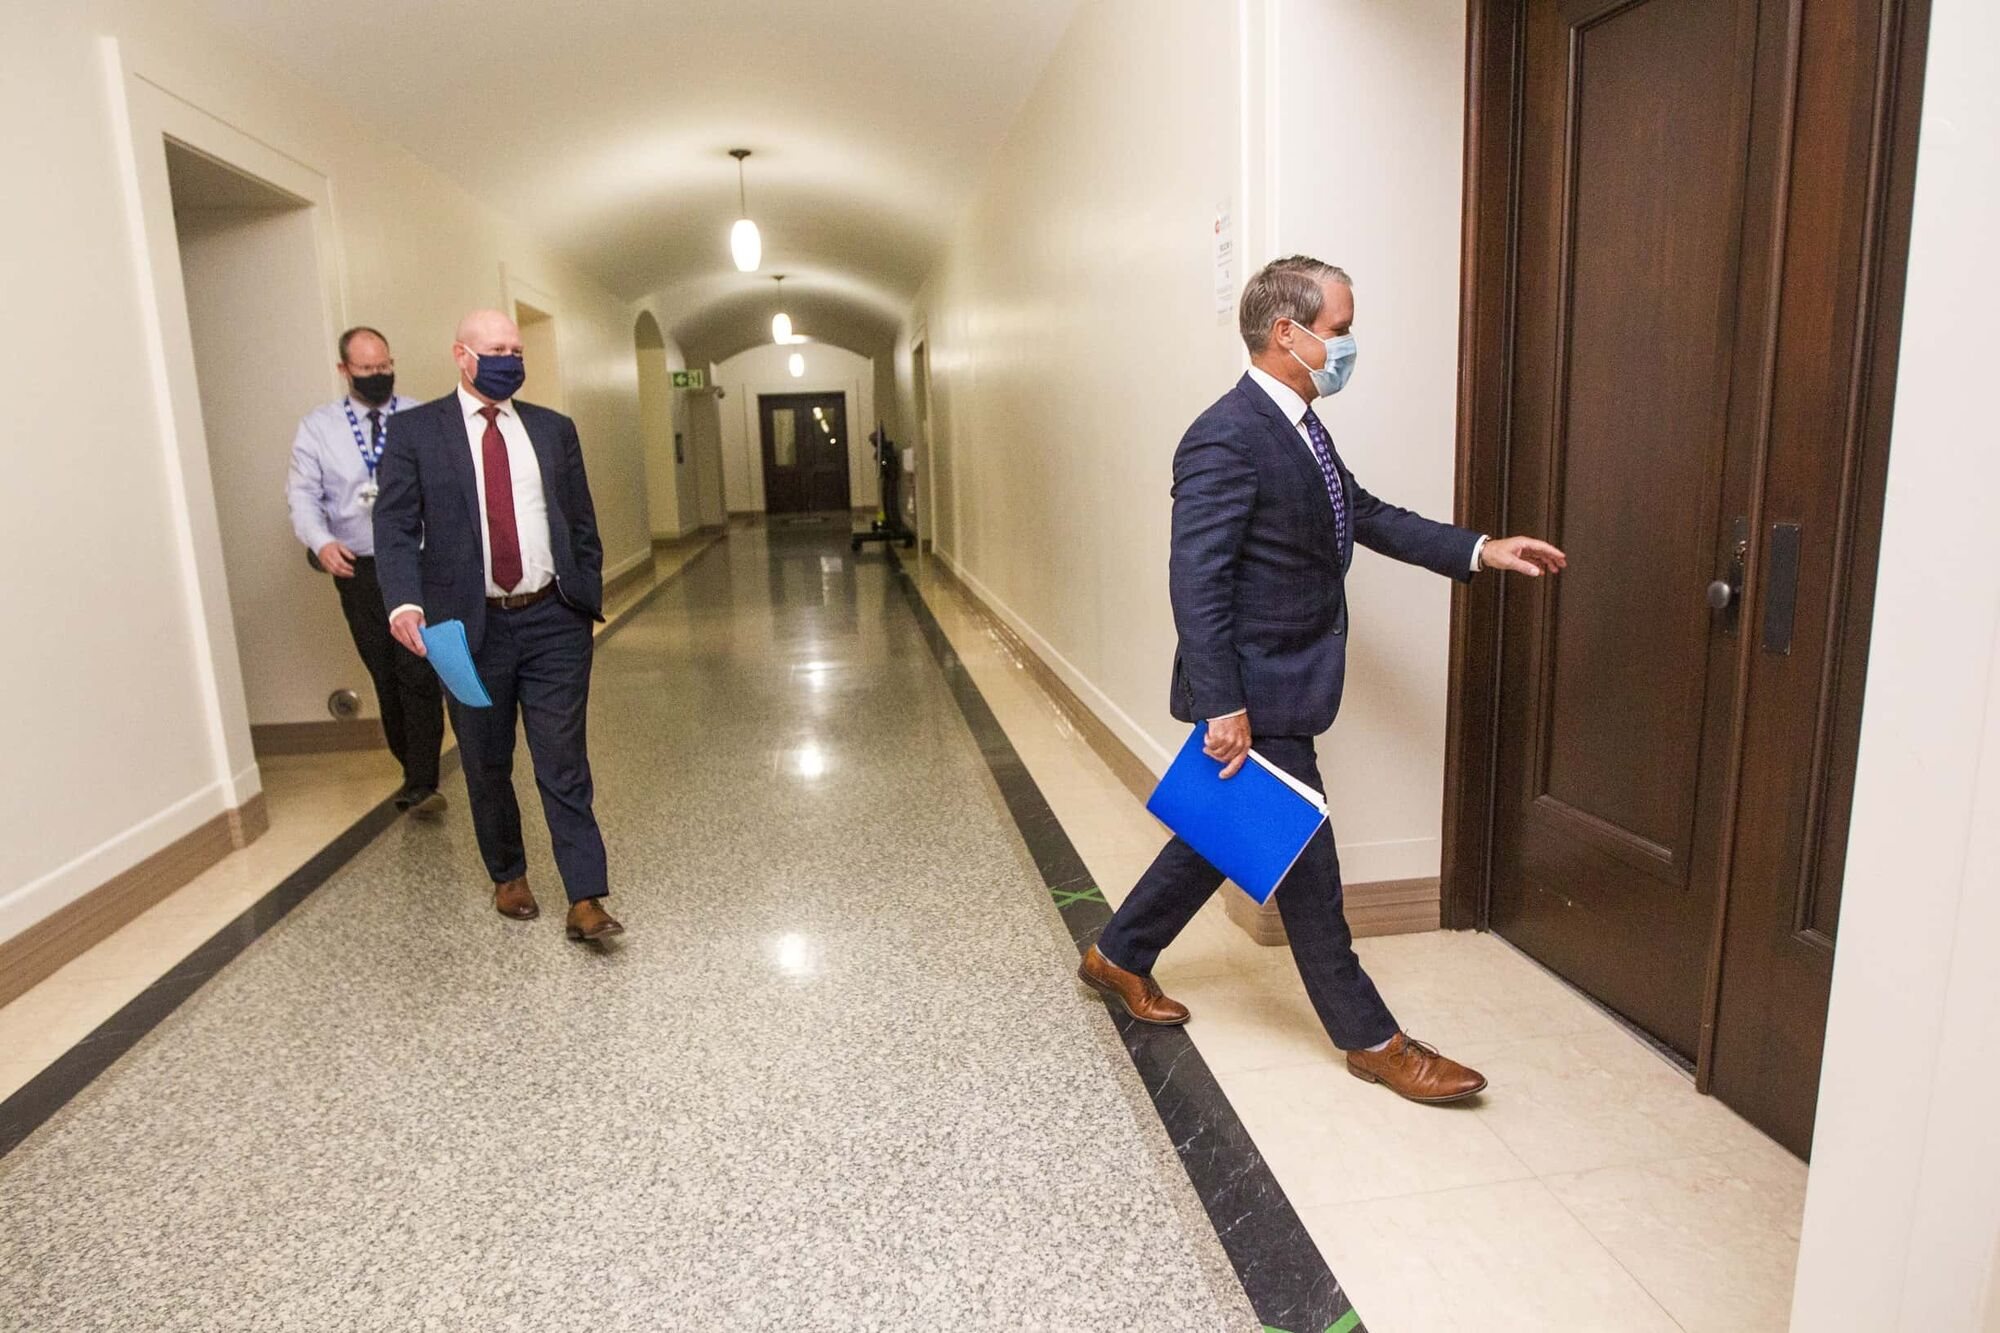 Health minister Cameron Friesen (right) has refused to apologize for criticizing hundreds of doctors who demanded a provincewide lockdown to get spiralling COVID-19 cases under control. (Mikaela MacKenzie / Winnipeg Free Press)